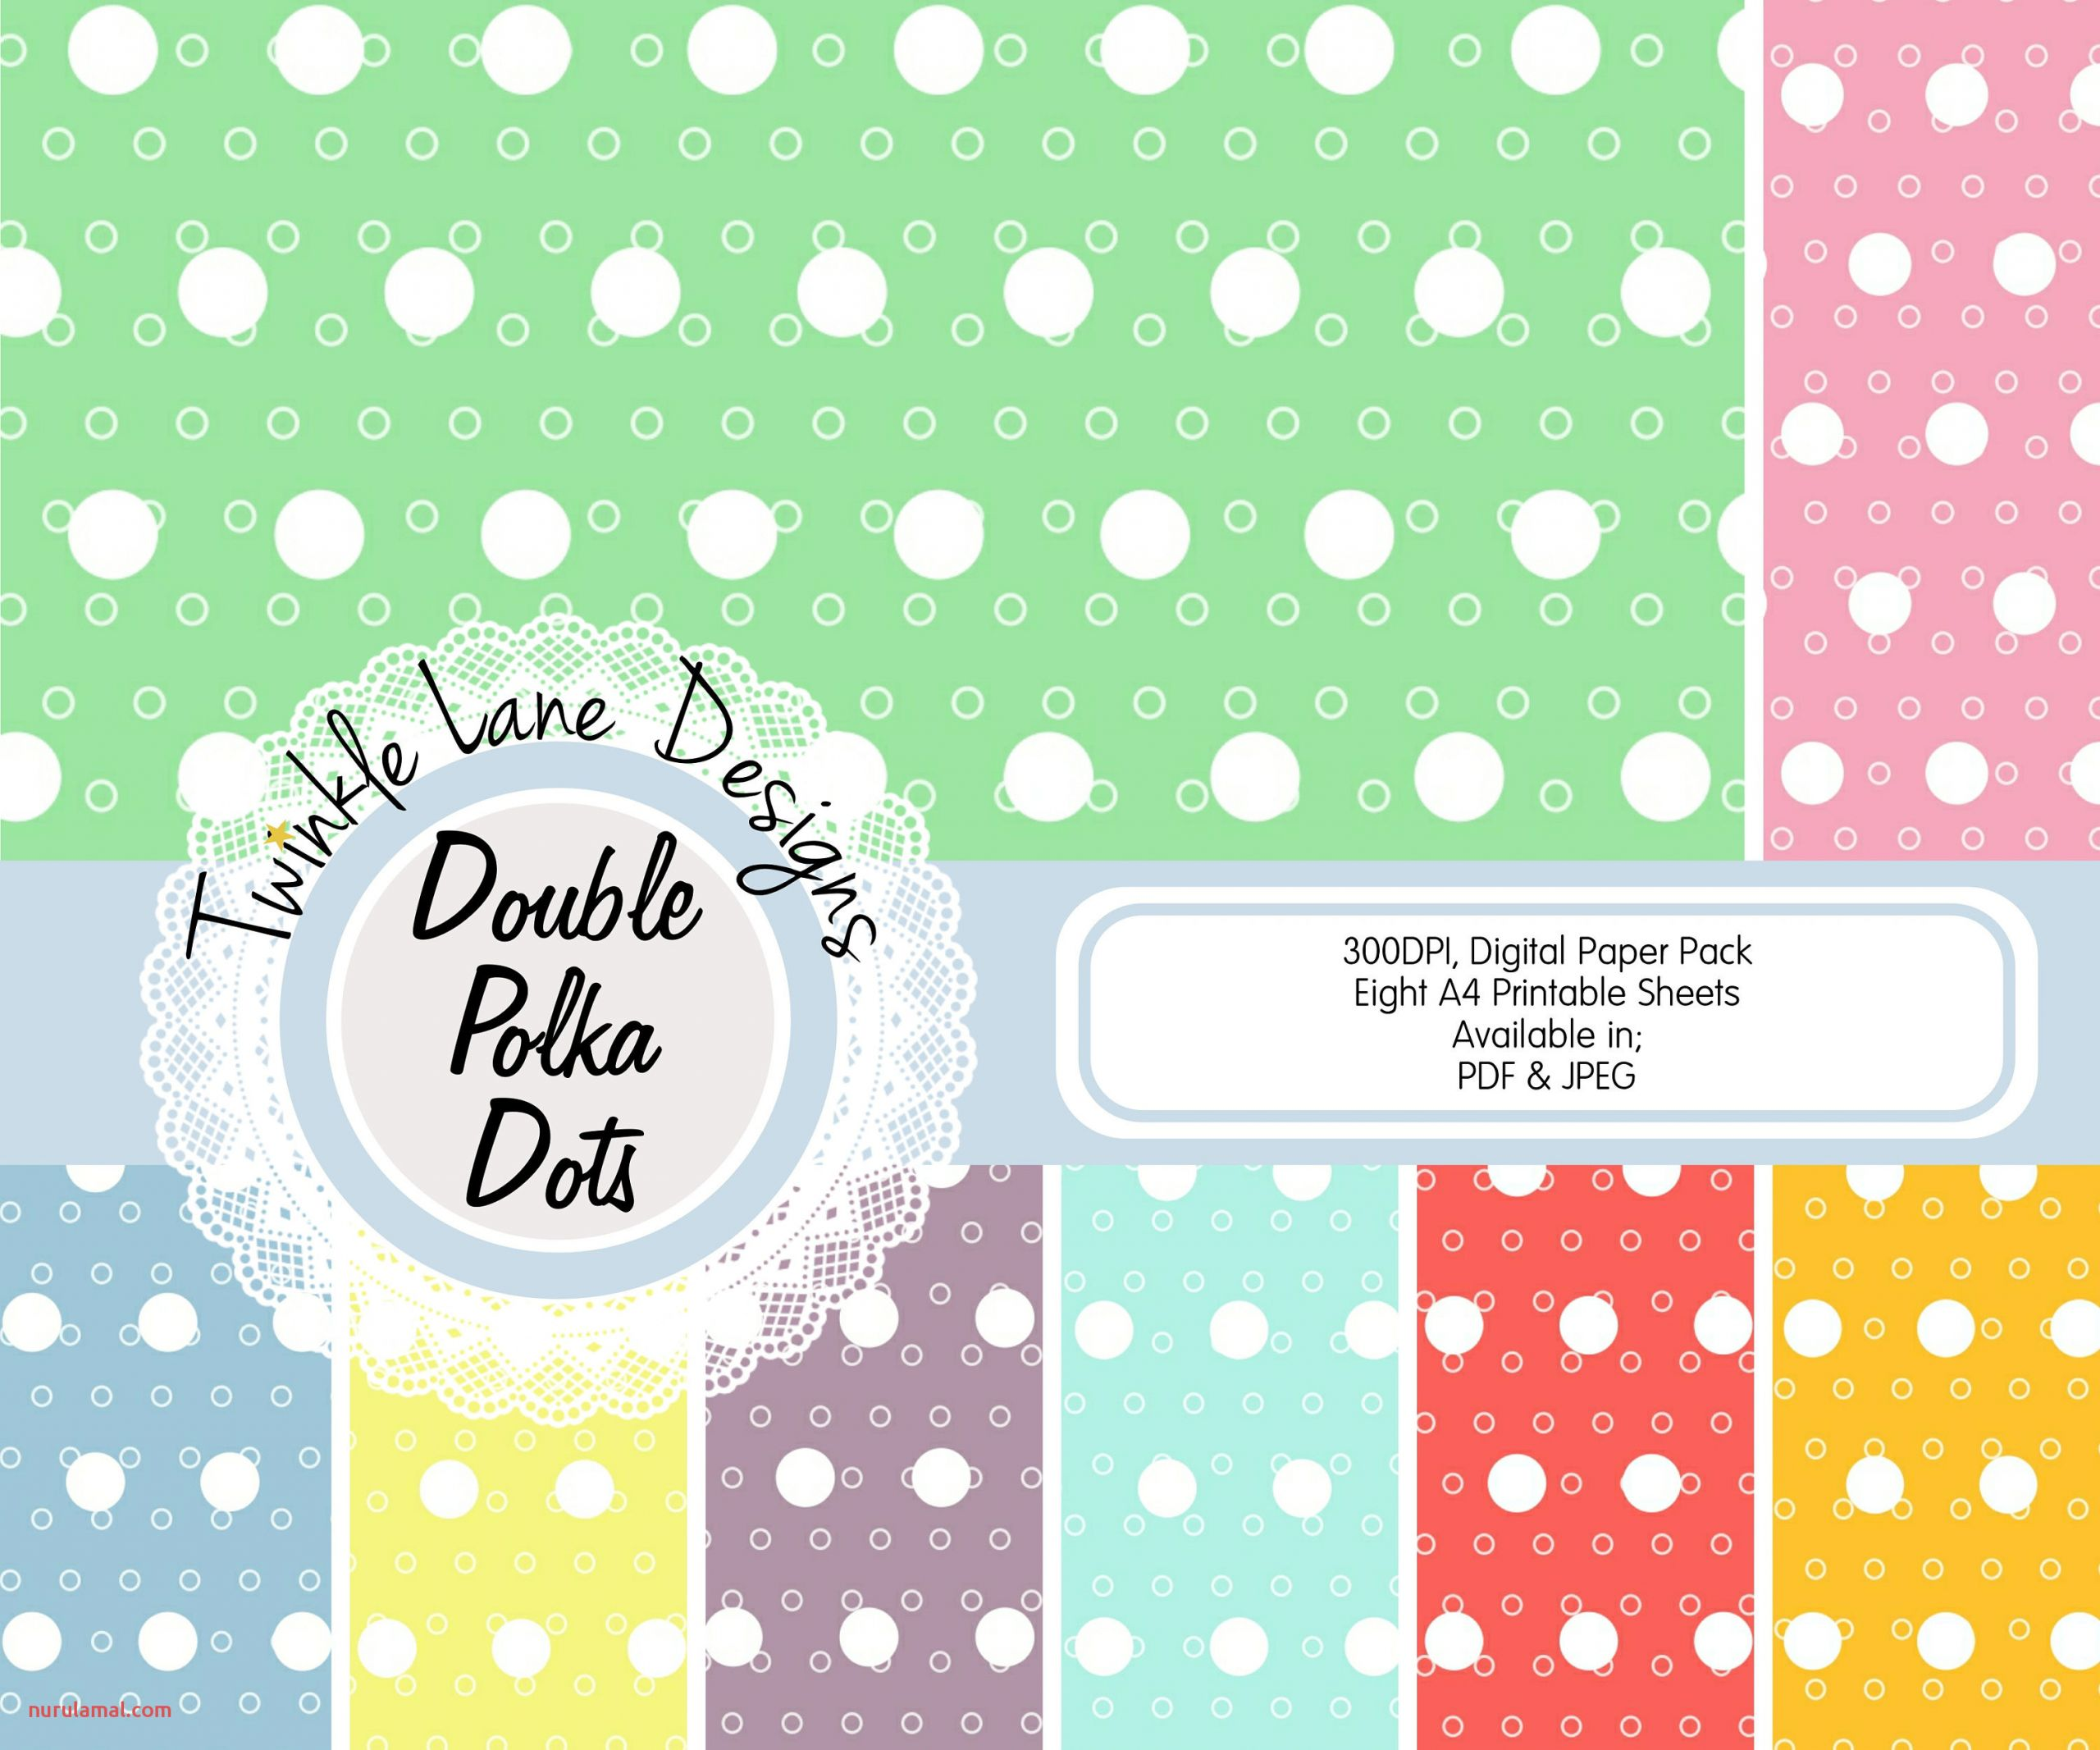 Polka Dots Digital Papers Eight A4 Pages Spots Double Dots Circles Papercraft Kit Papercrafting Paper Papercraft Print Papercraft